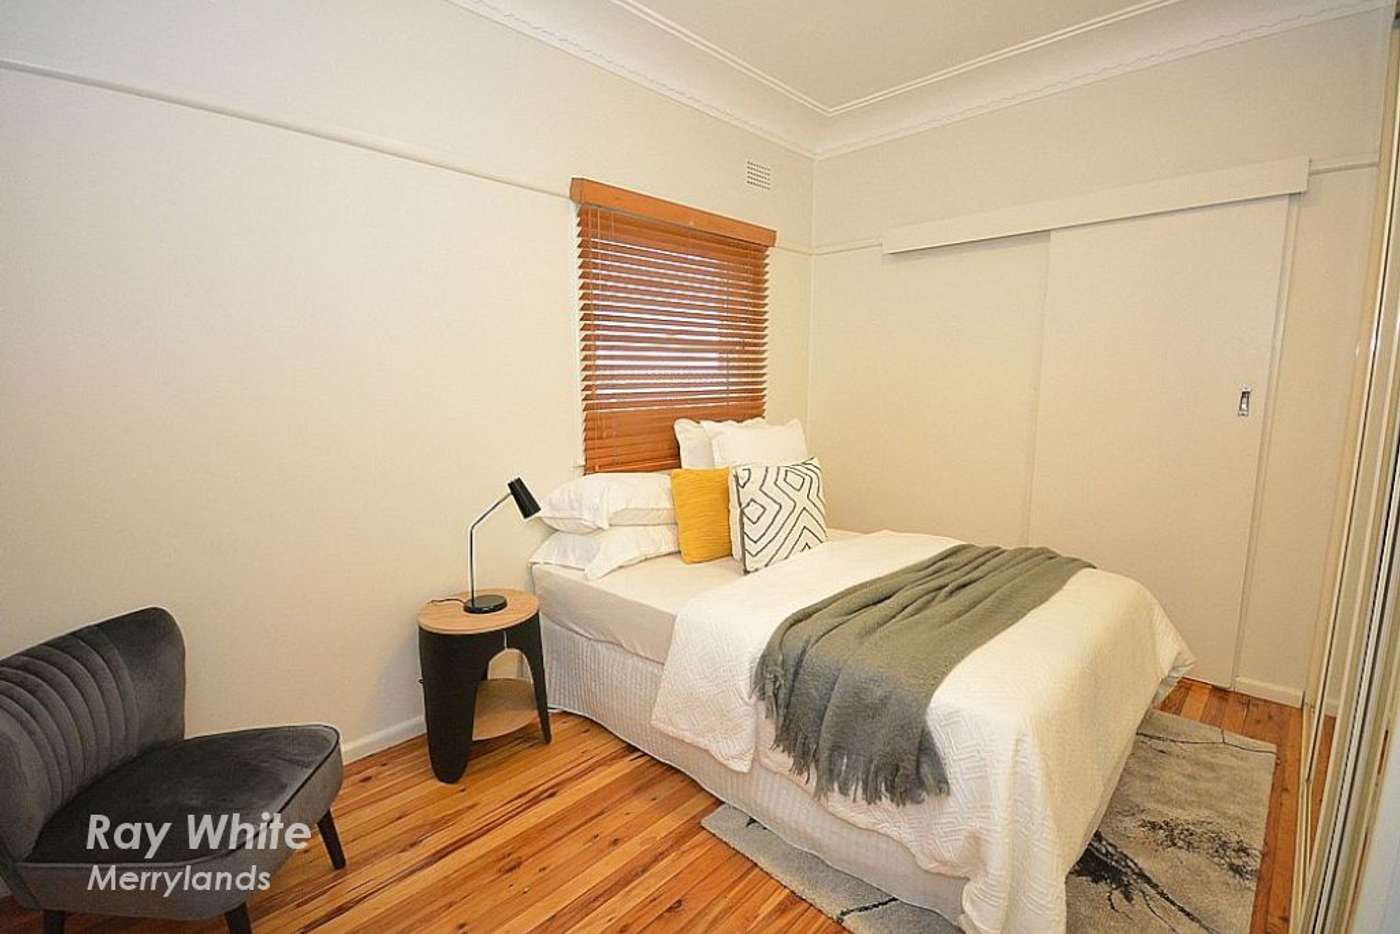 Seventh view of Homely house listing, 51 Paton Street, Merrylands NSW 2160